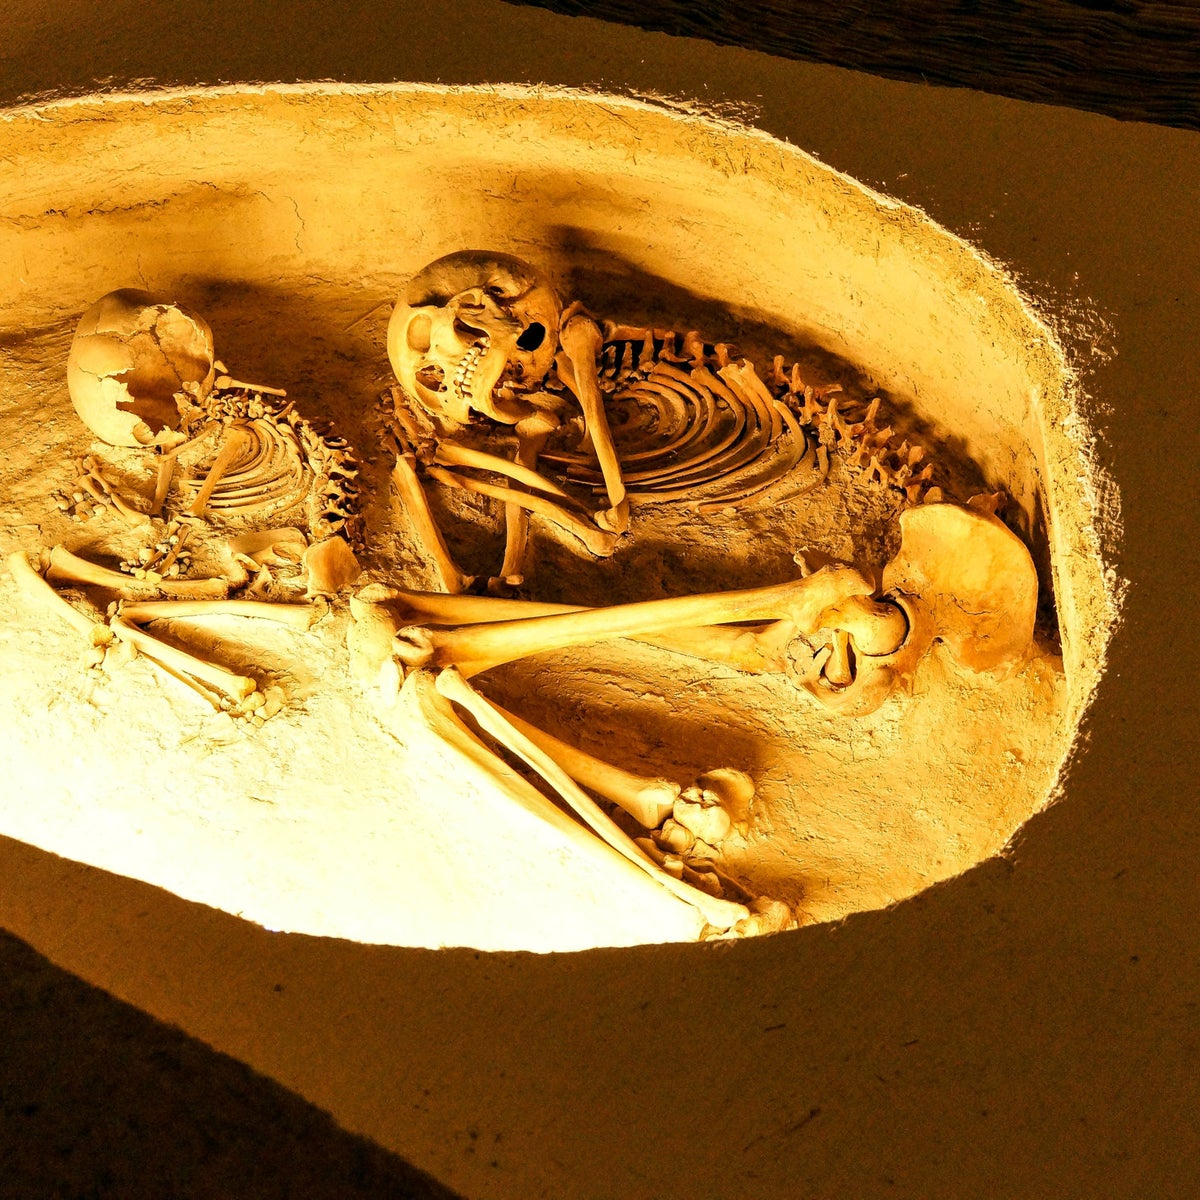 Prehistoric burial of skeleton from Catalhoyuk, about 9,000 years ago, Museum of Anatolian Civilization, Ankara, Turkey